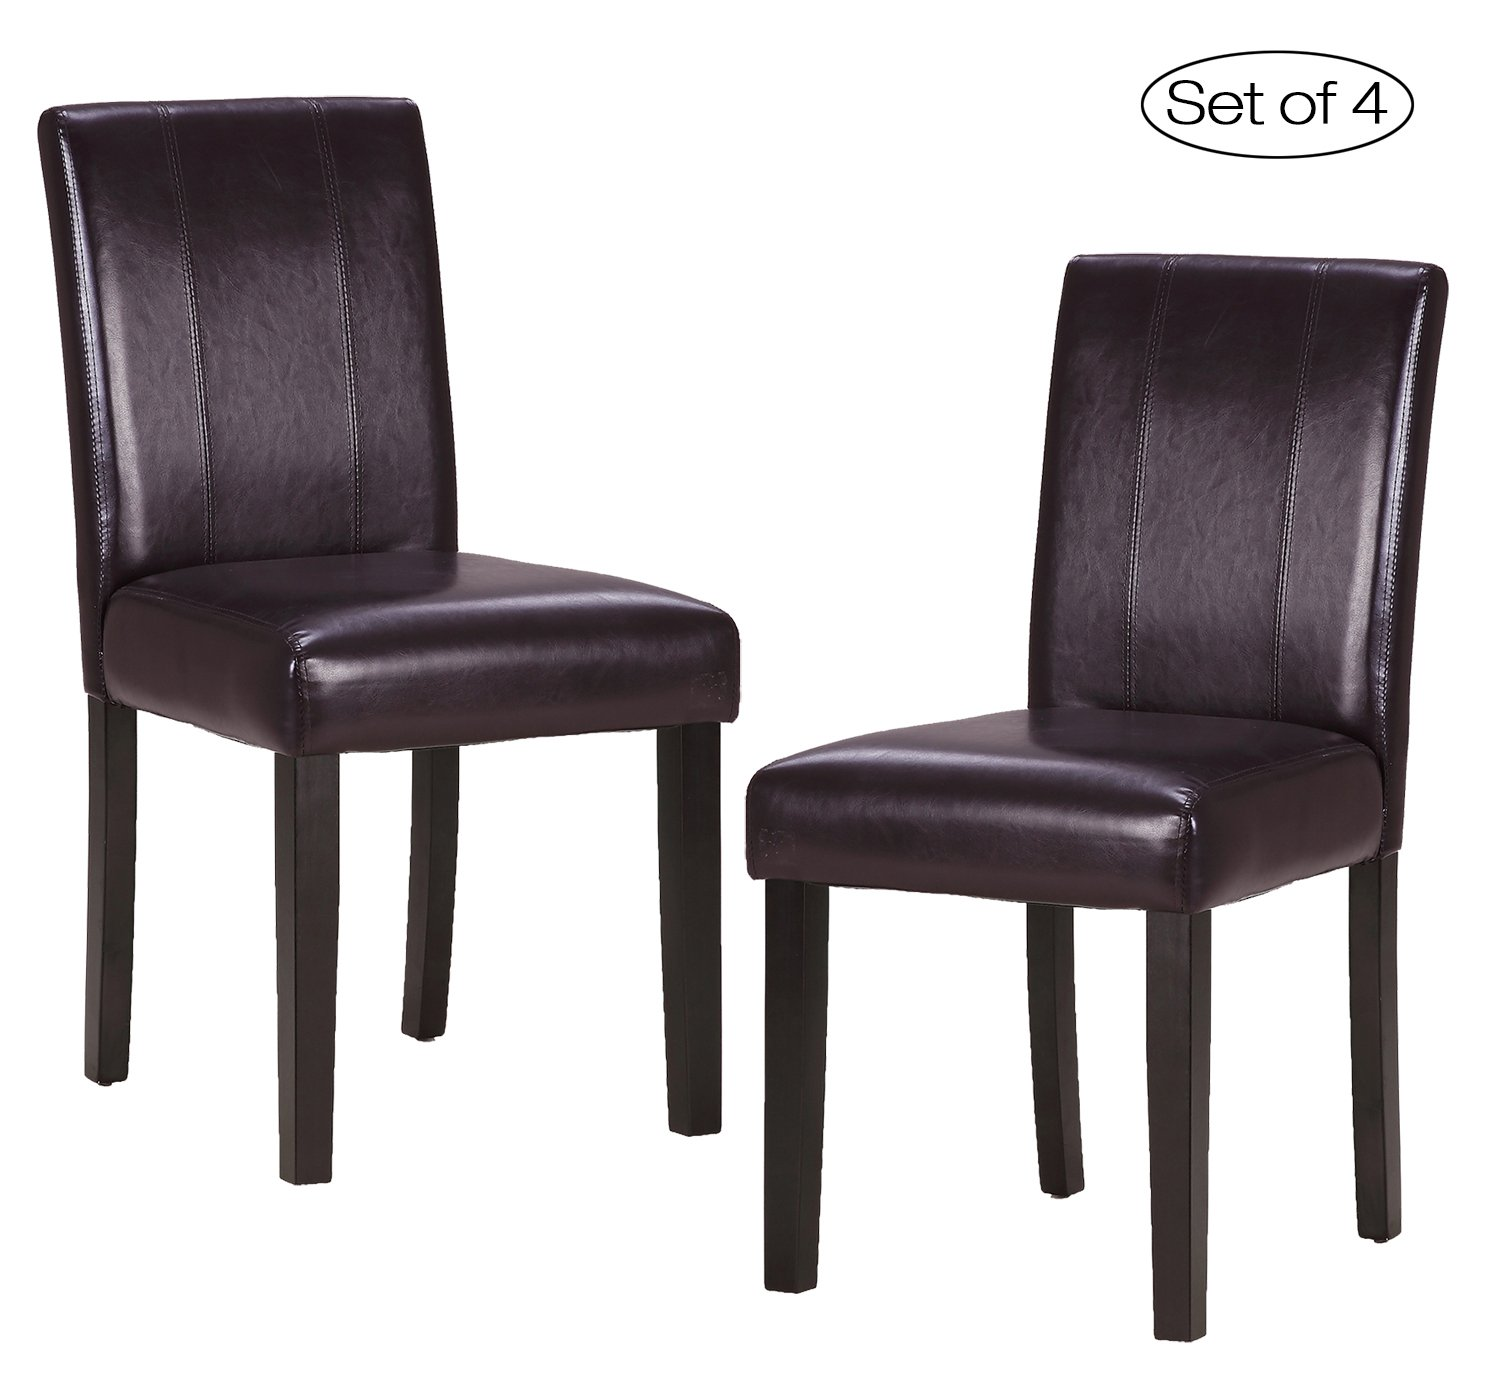 Set of 4 Dining Room Chair with Solid Wood Legs ZXBSWELE Urban Style Dining Chair for Kitchen Living Room Dining Room, Leatherette, Chocolate Brown